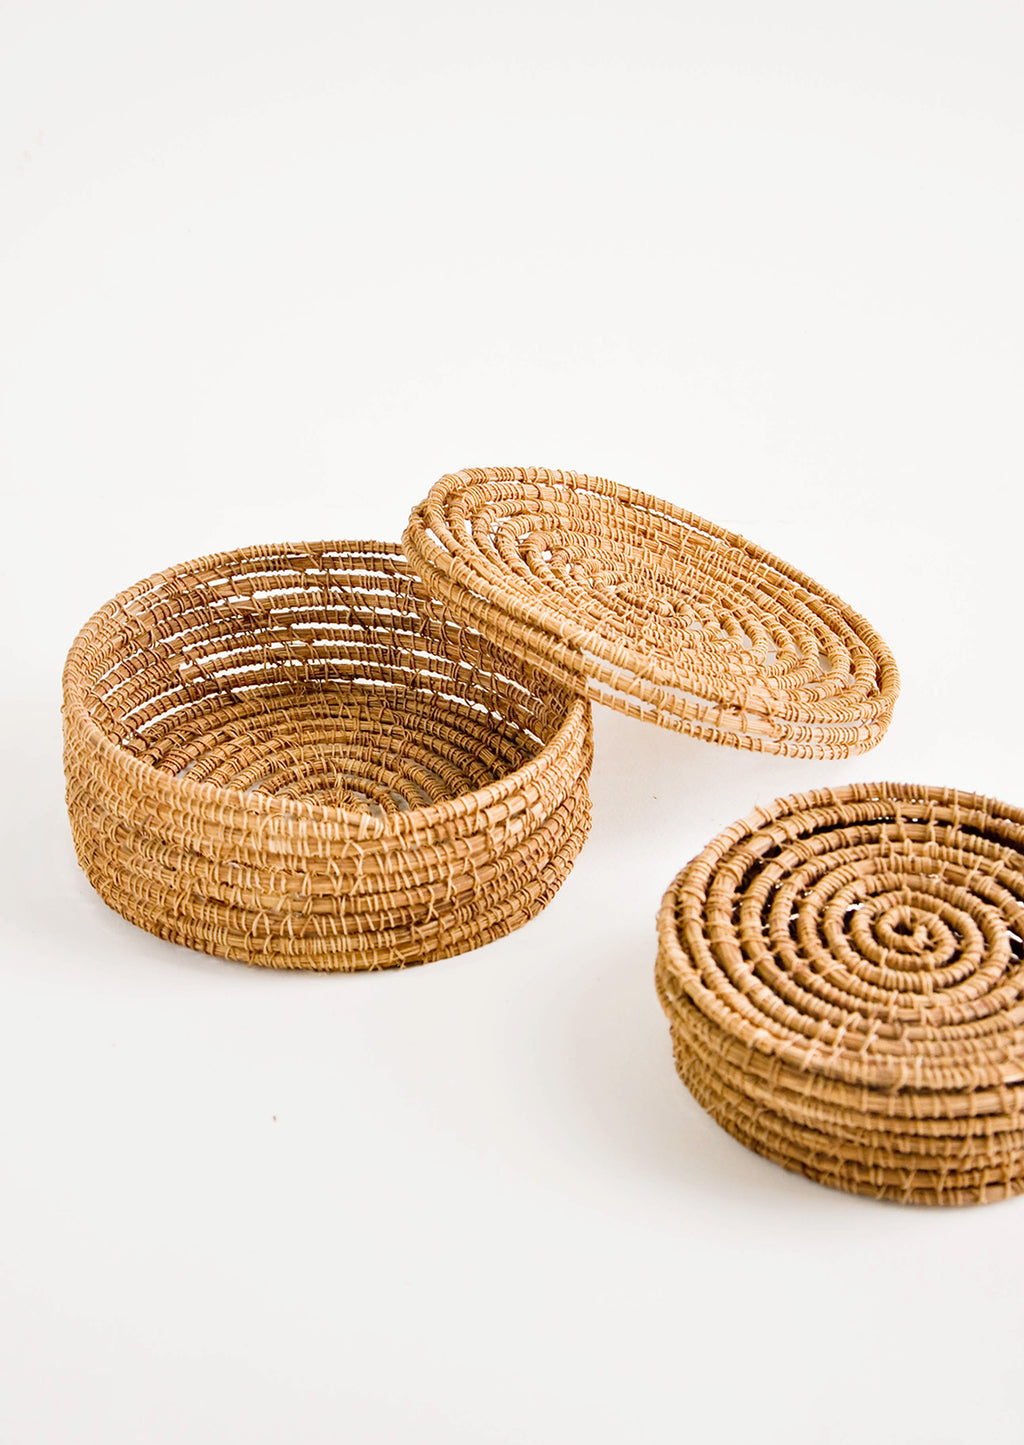 1: Small, round and shallow baskets made from brown palm fiber with removable lids.